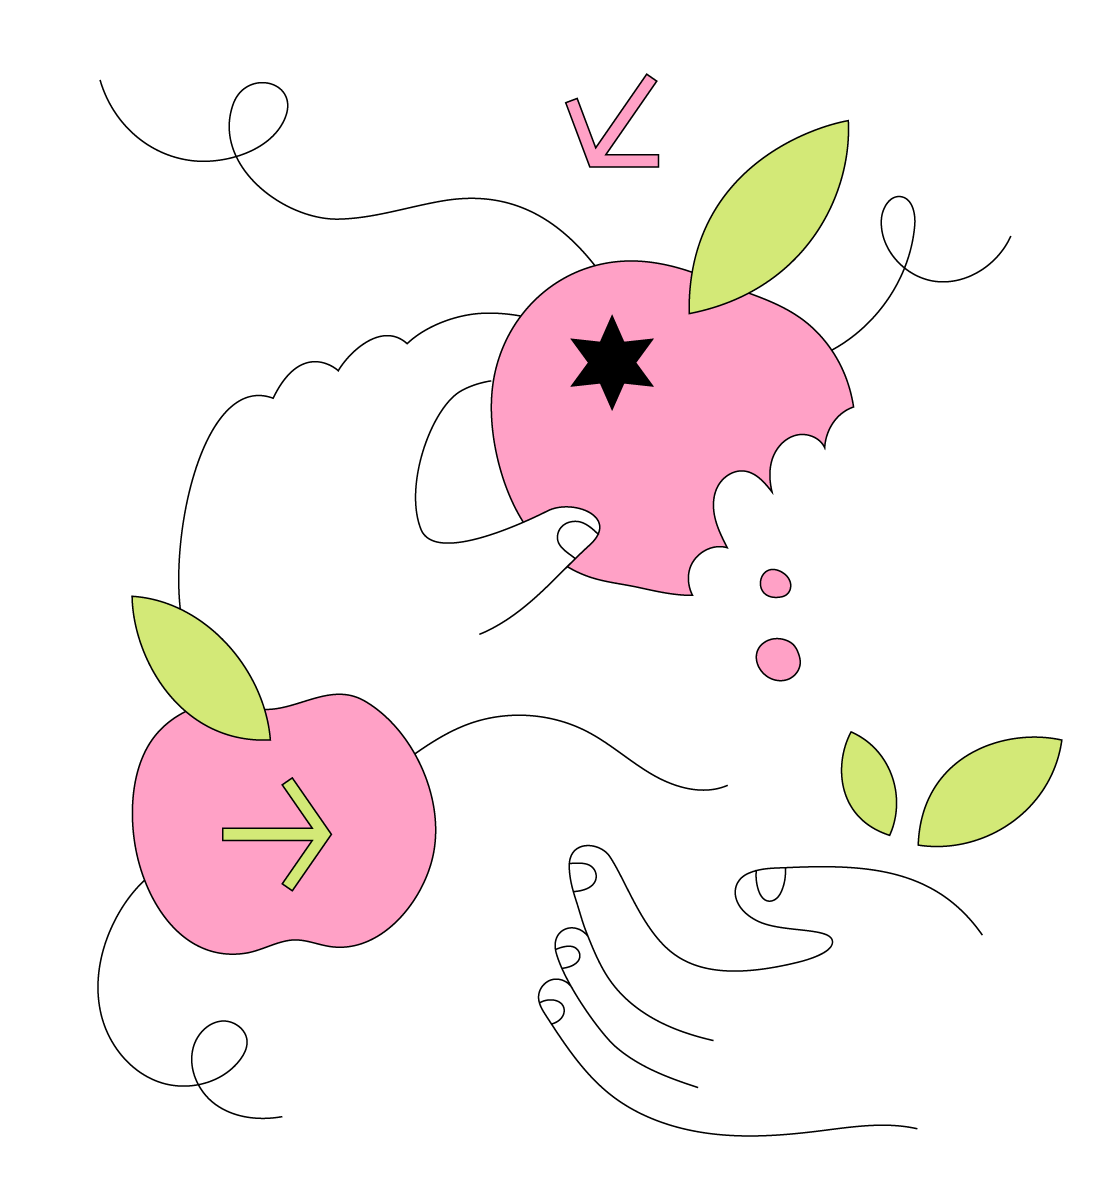 Cartoon graphic of a hand holding an apple, an apple and a hand with leaves on top of it.